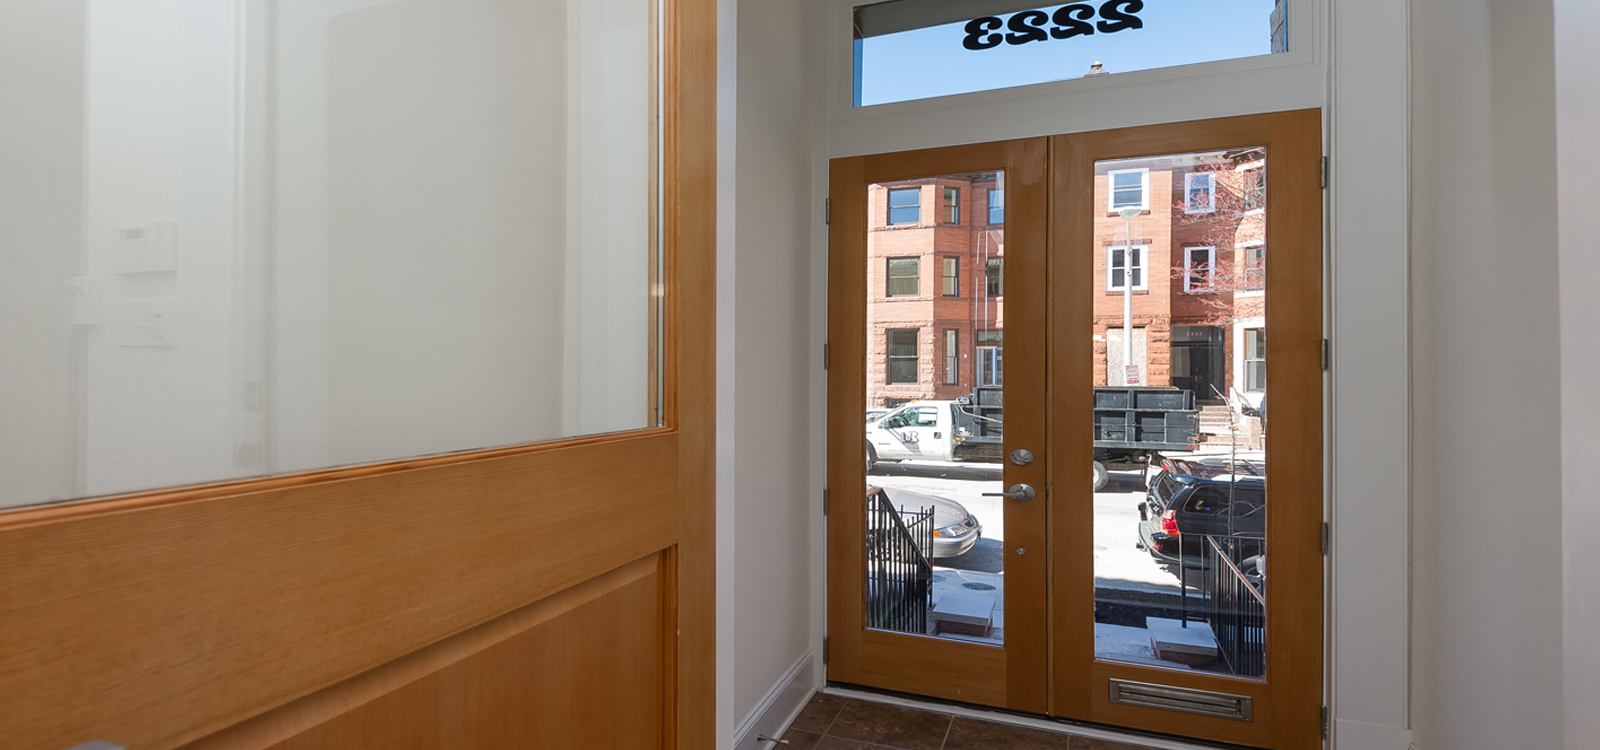 Callow Ave. NSP2 Housing Project, Baltimore, MD, residential renovation by UrbanBuilt